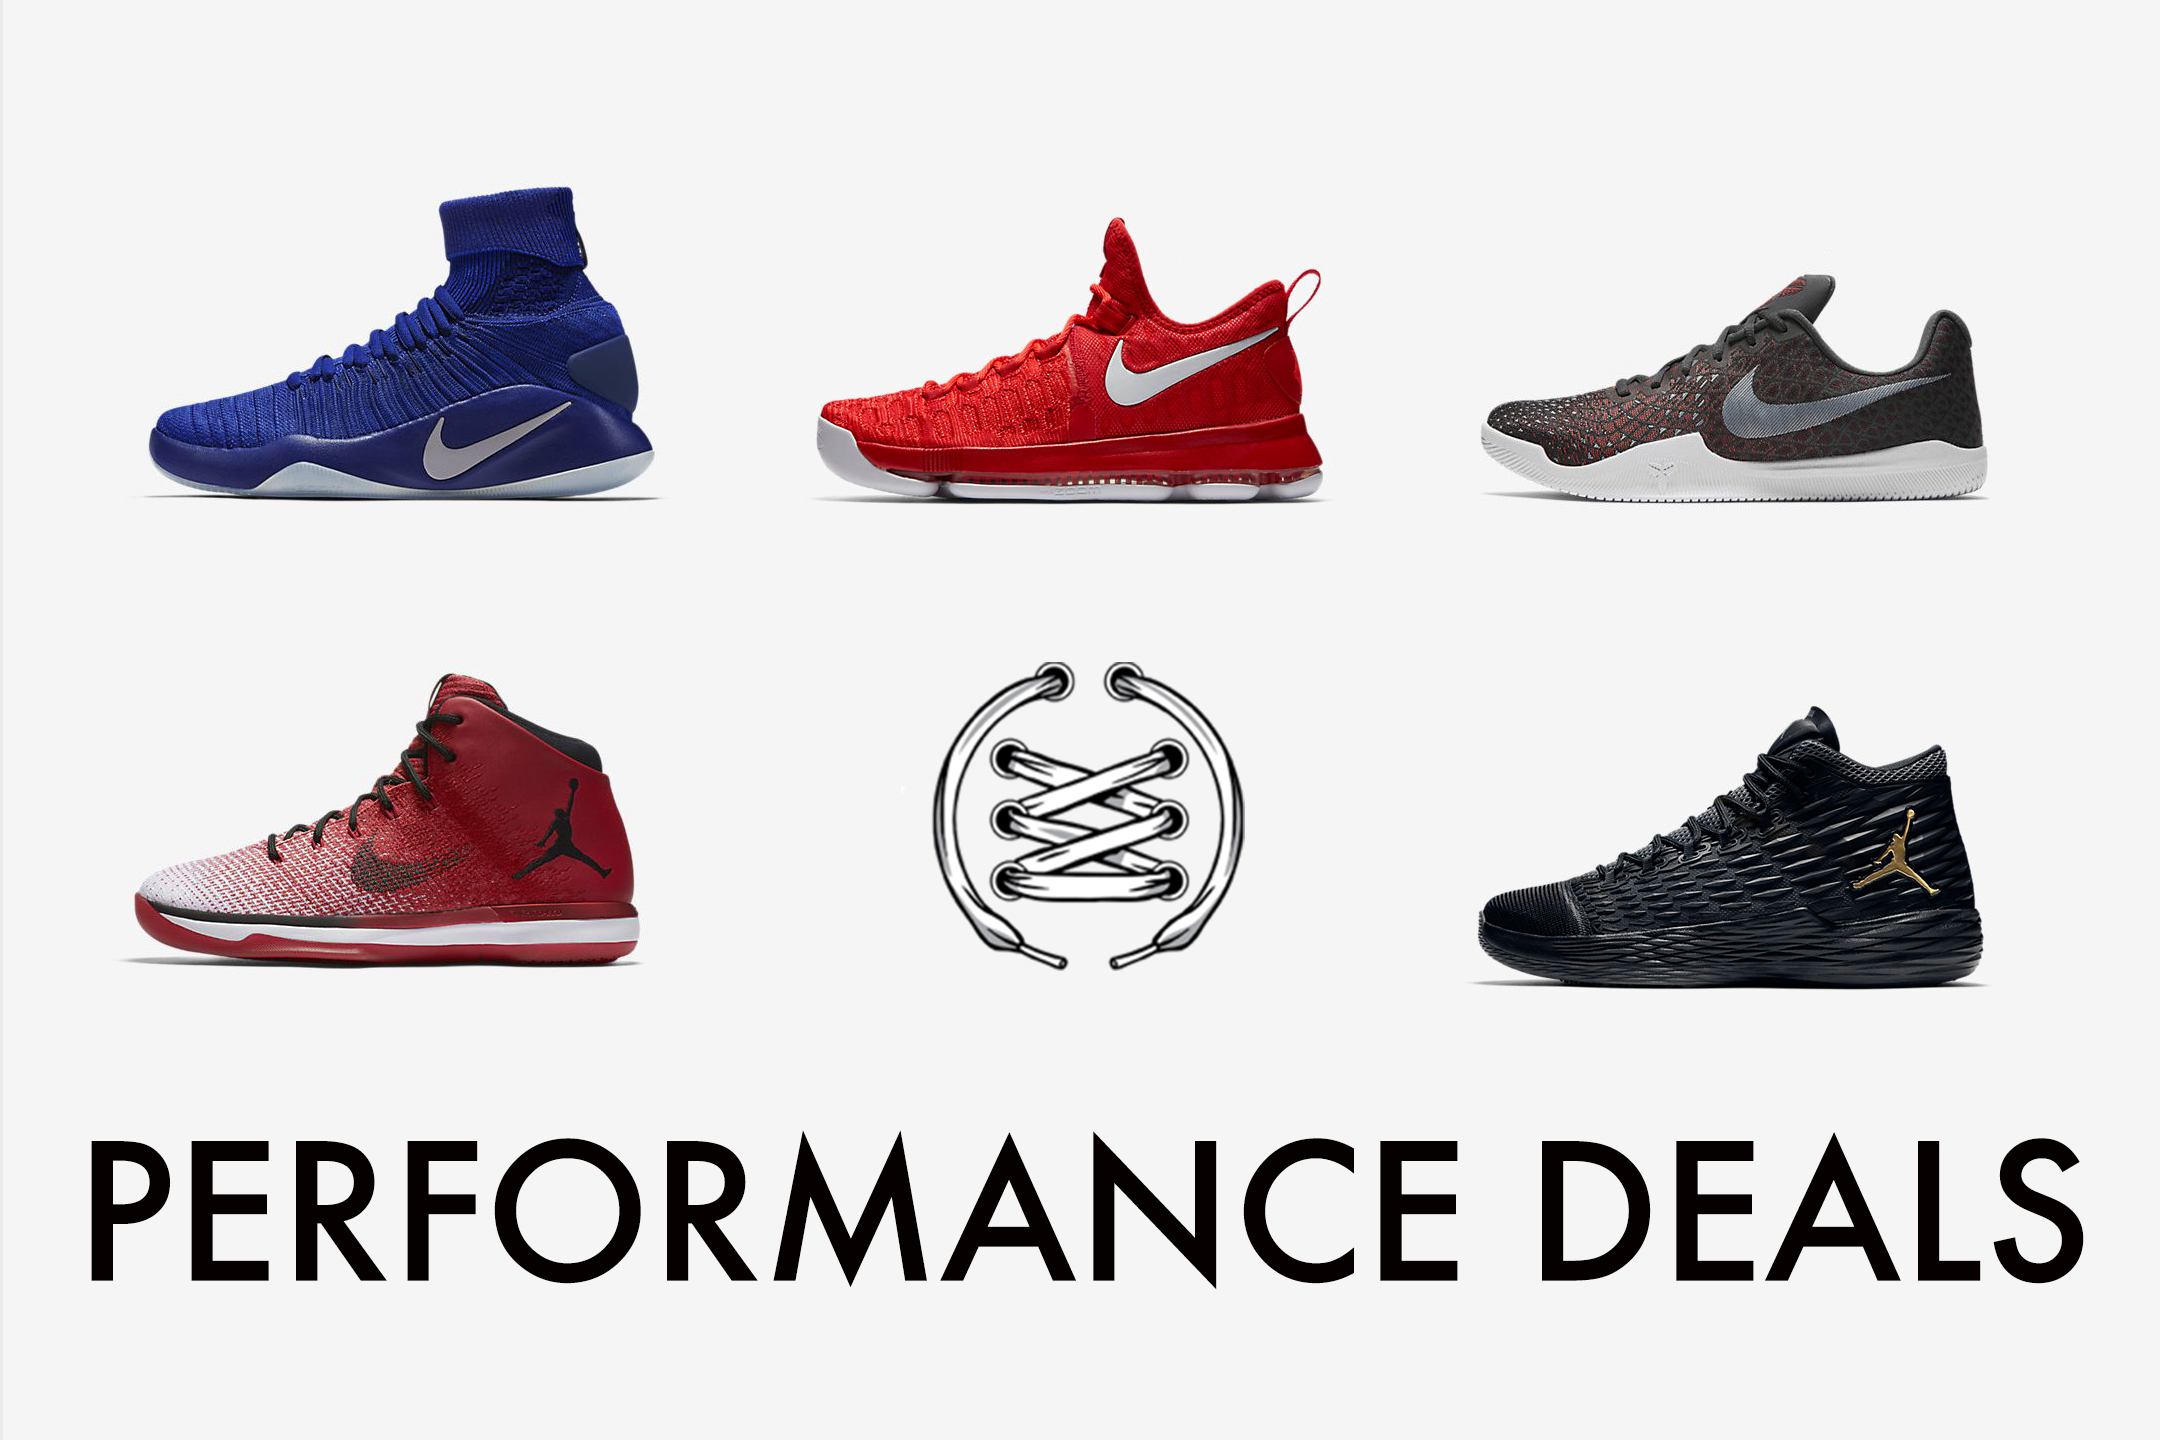 NIKE PERFORMANCE DEALS 1